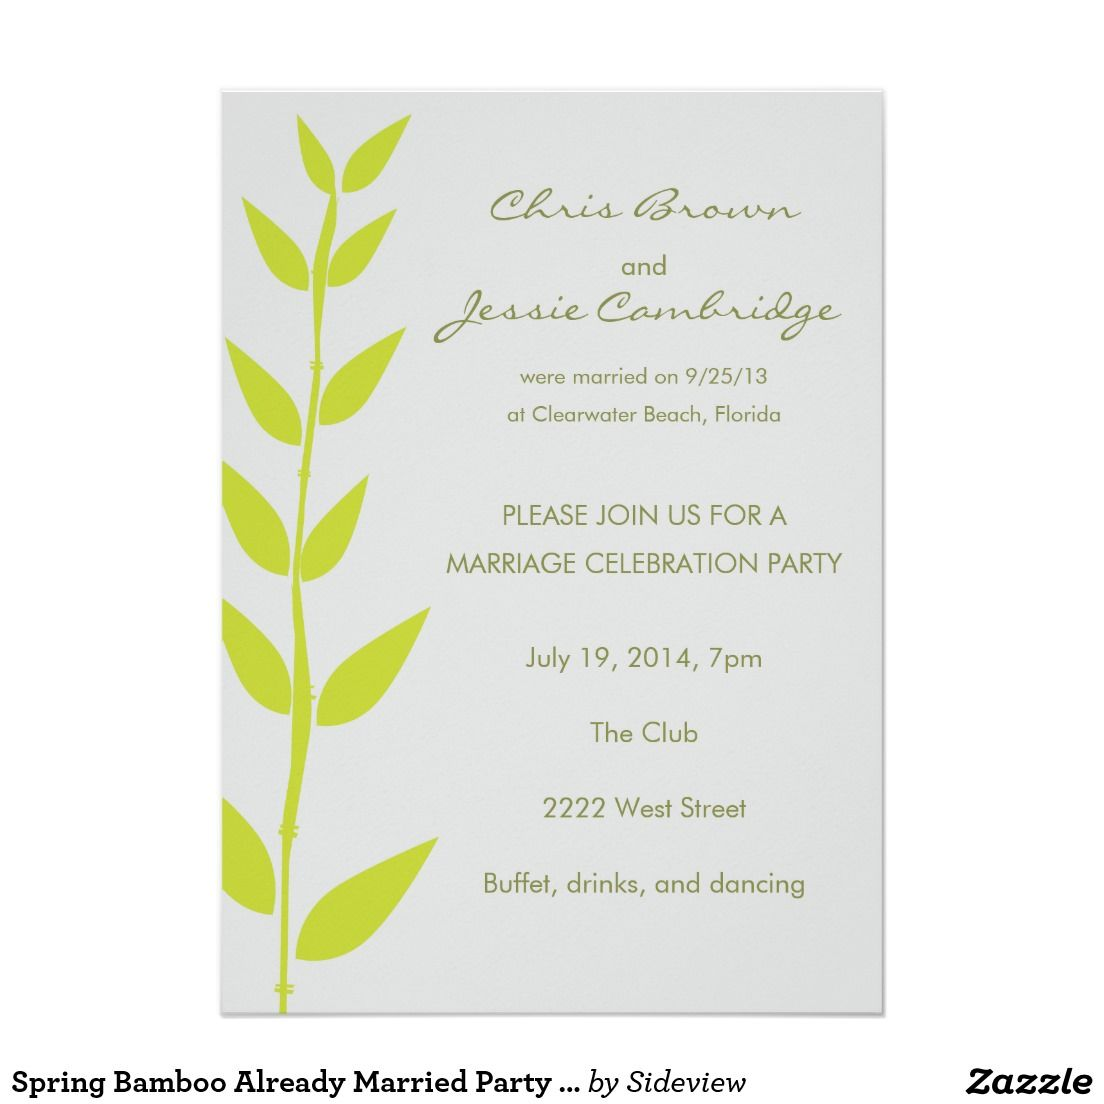 Wedding Invitation Wording Already Married Couple Google Search Spring Wedding Invitations Wedding Reception Invitations Wedding Invitation Wording